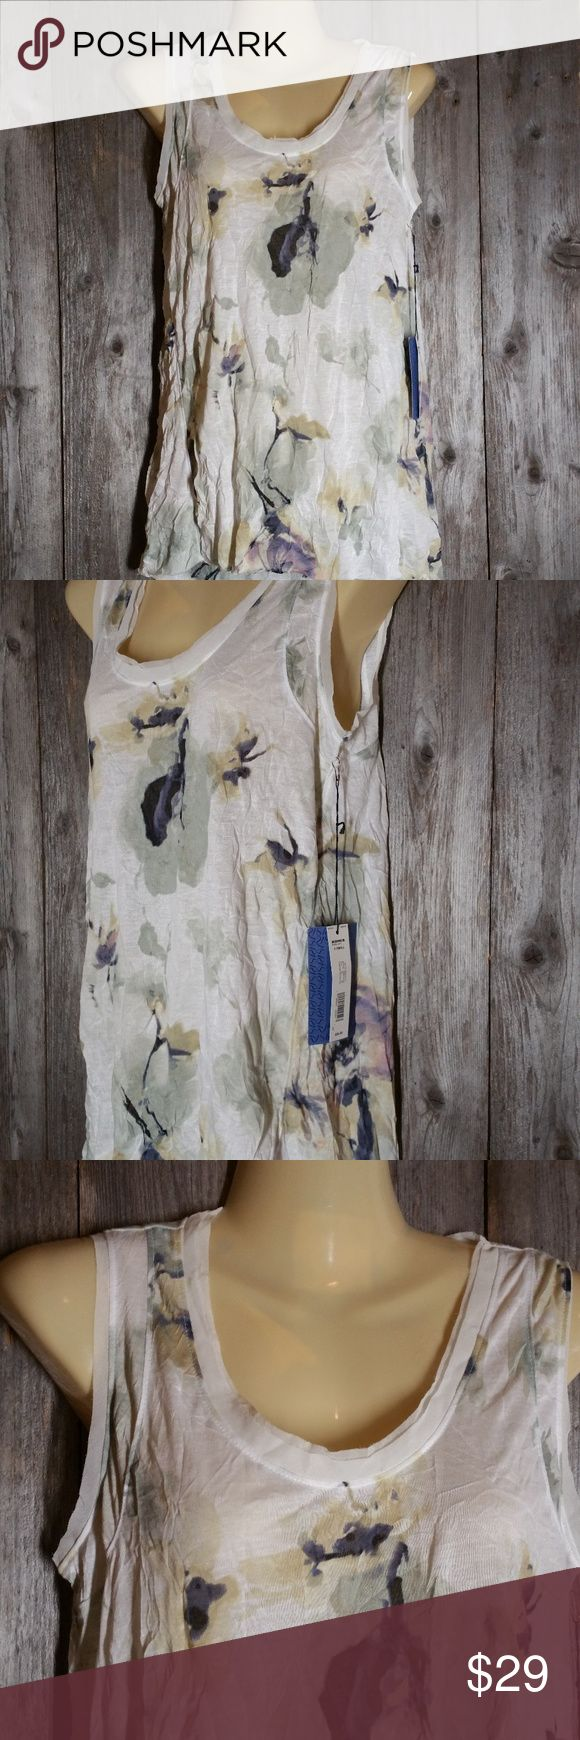 Simply Vera Wang Tank Top Blouse White Floral NWT Vera Wang Womens Tank Top Blouse XS White Floral Chiffon Trim Puckered Crinkled New with tags Polyester  Approx bust 35 and 27-28 from shoulder to hem  (T14) Simply Vera Vera Wang Tops Tank Tops